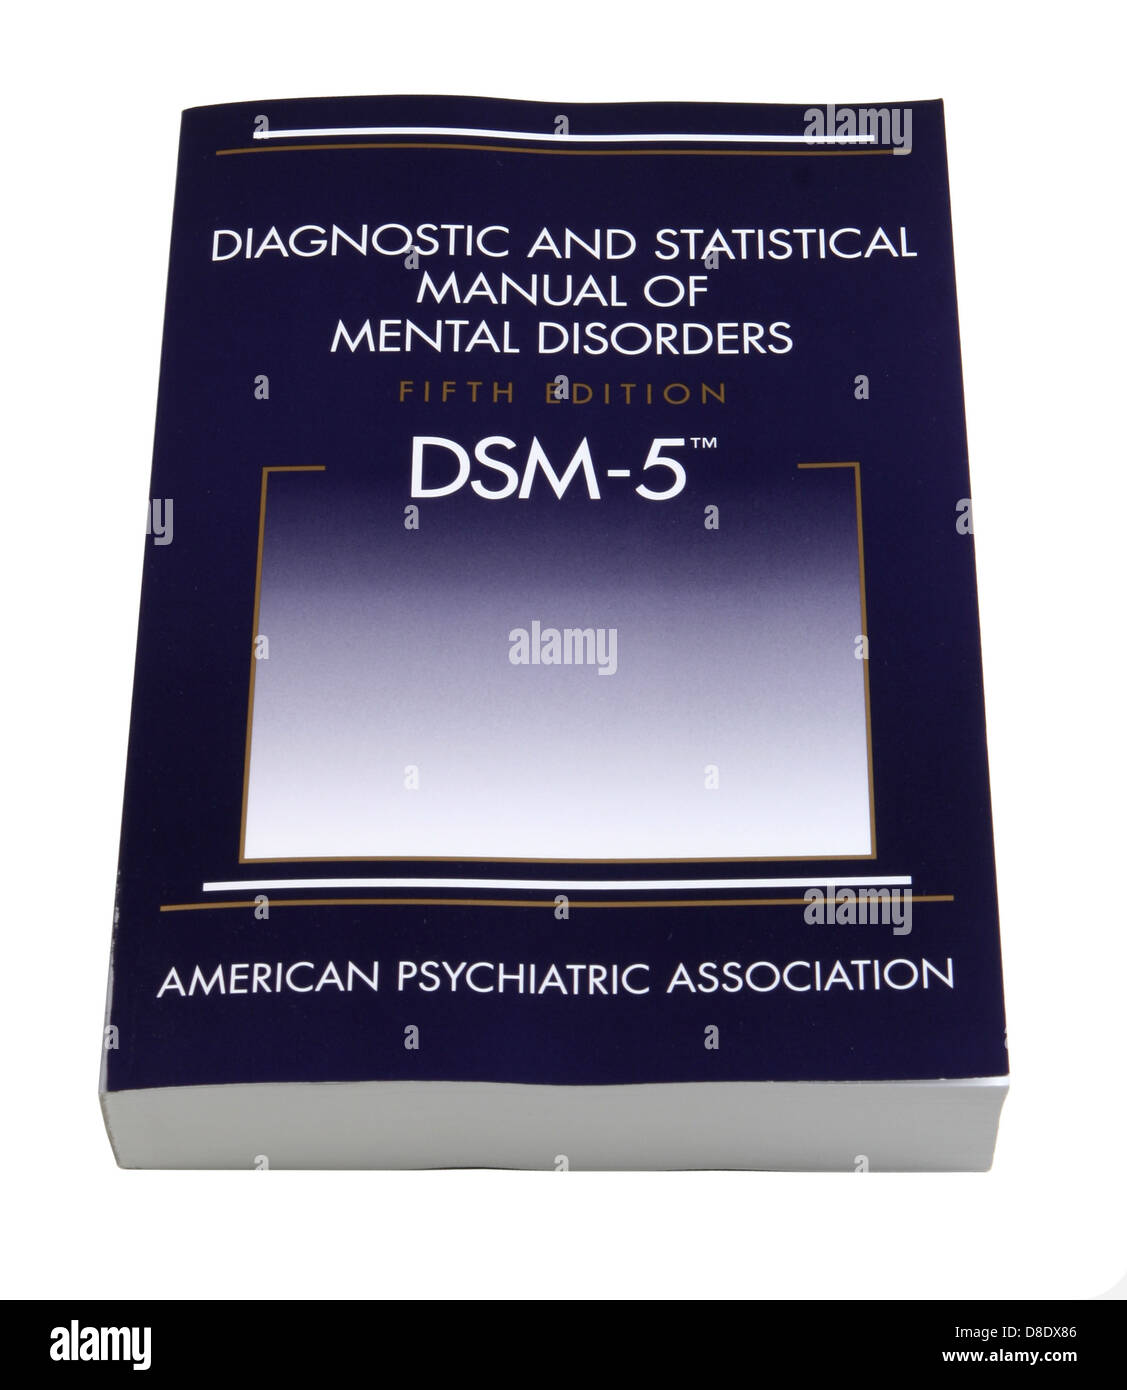 Diagnostic and Statistical Manual of Mental Disorders, Fifth Edition (DSM-5) published by the American Psychiatric - Stock Image